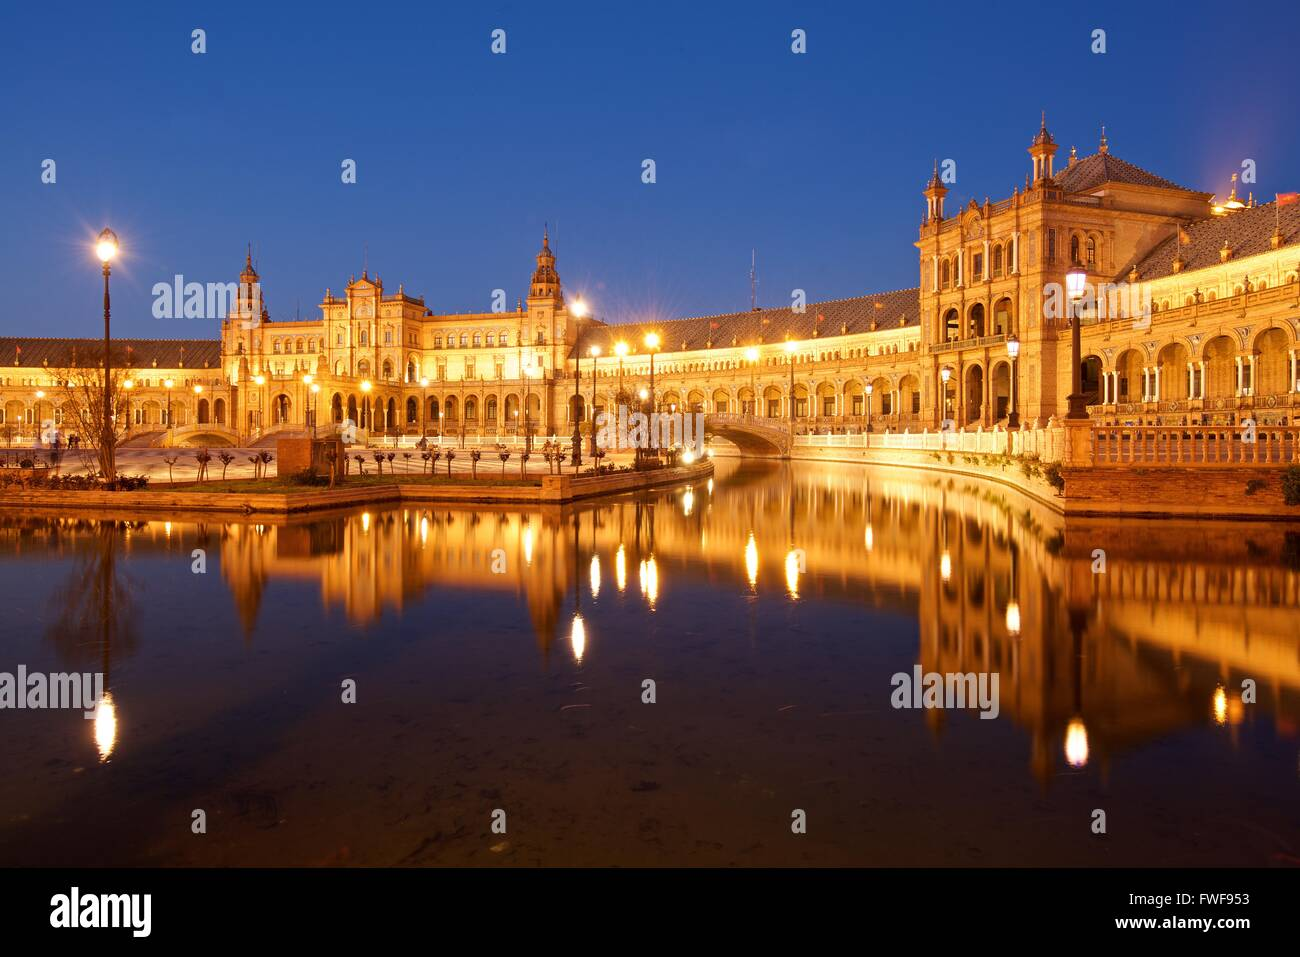 A colour image of the flood lit Plaza De espanga in Seville at night - Stock Image